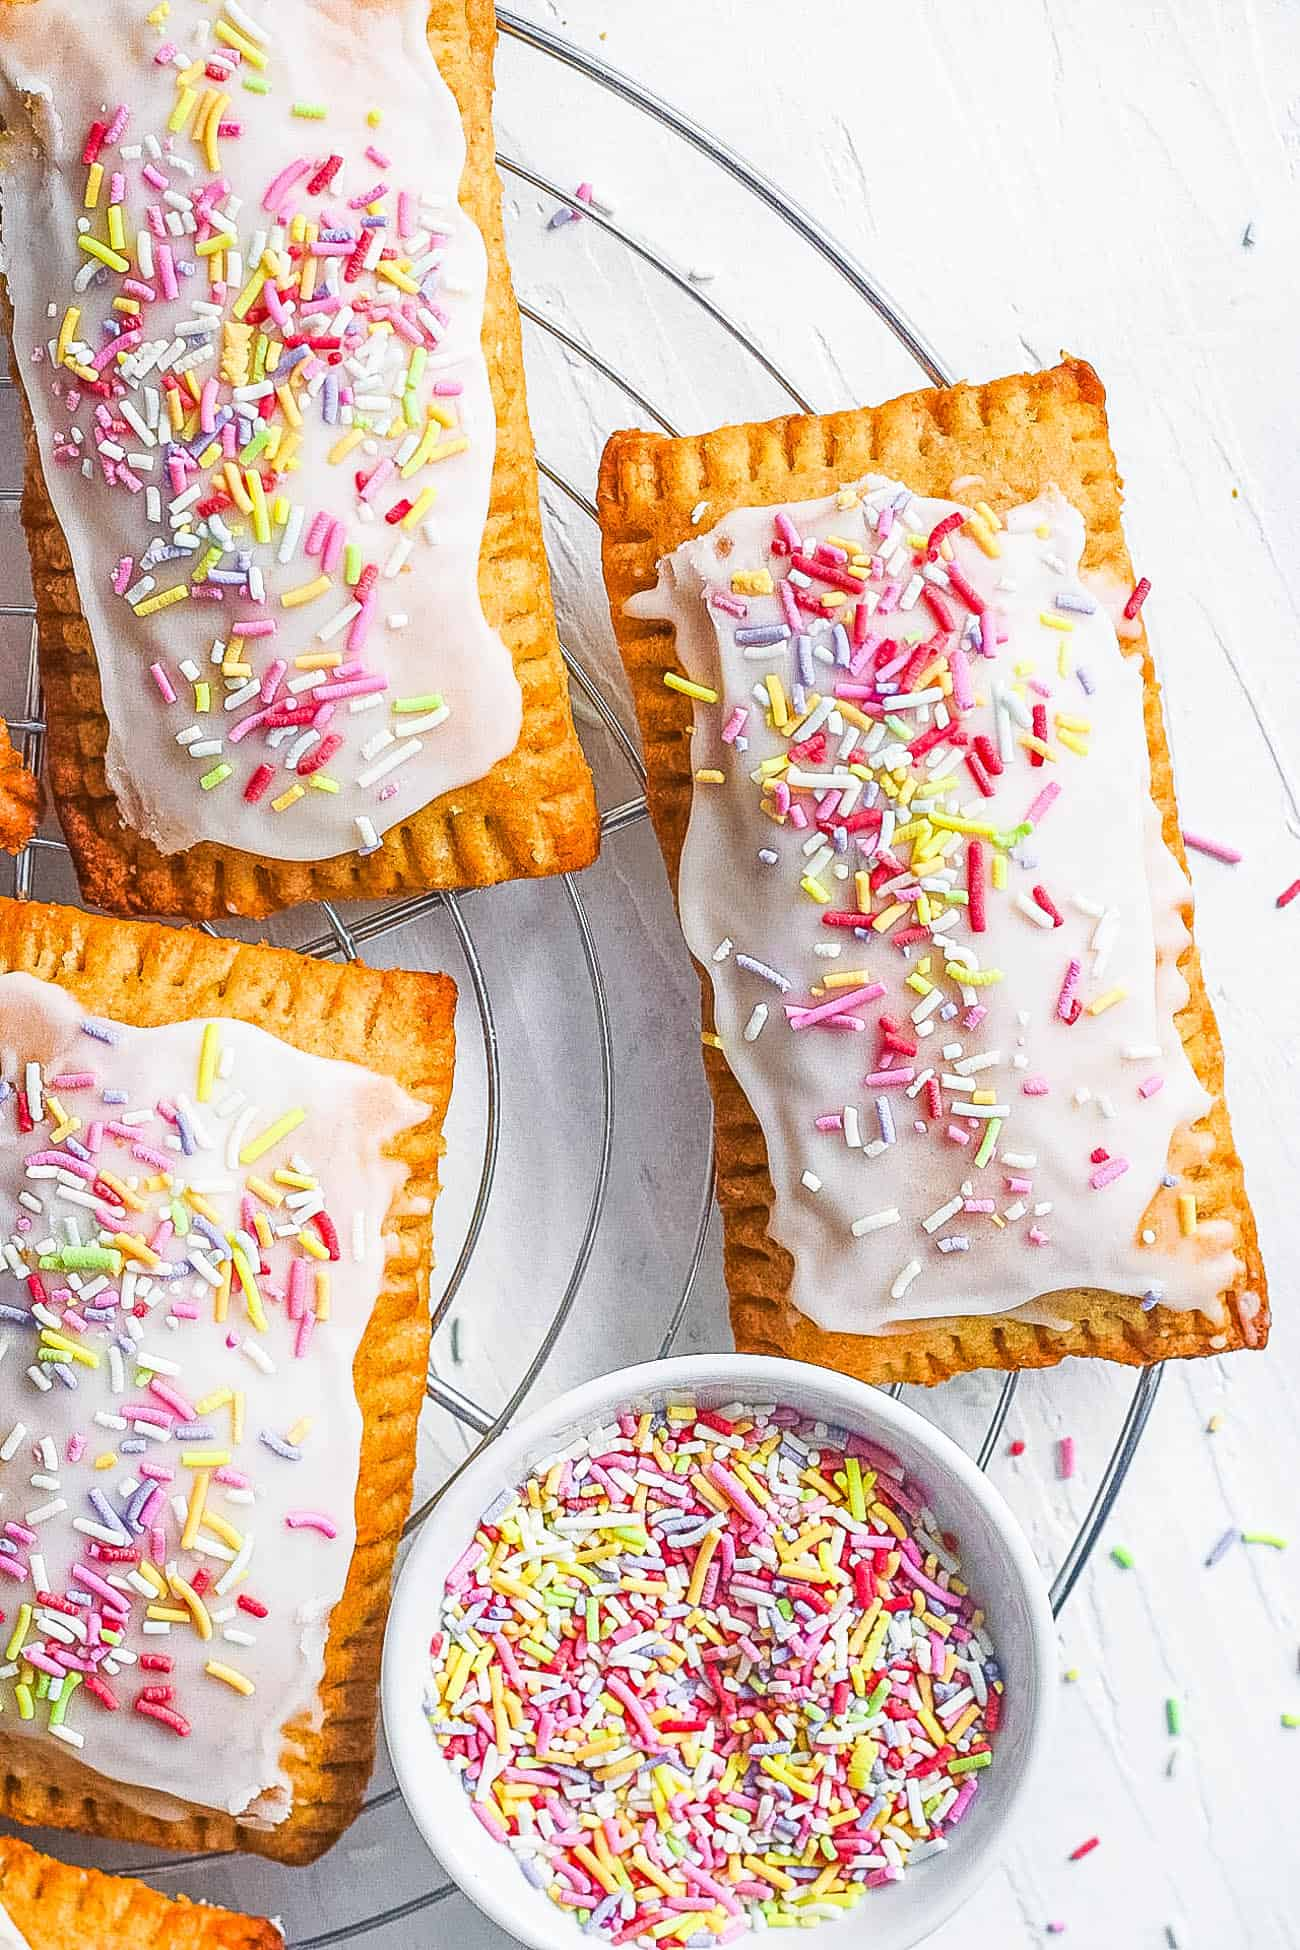 healthy homemade vegan pop tarts with strawberry filling with rainbow sprinkles and coconut yogurt icing